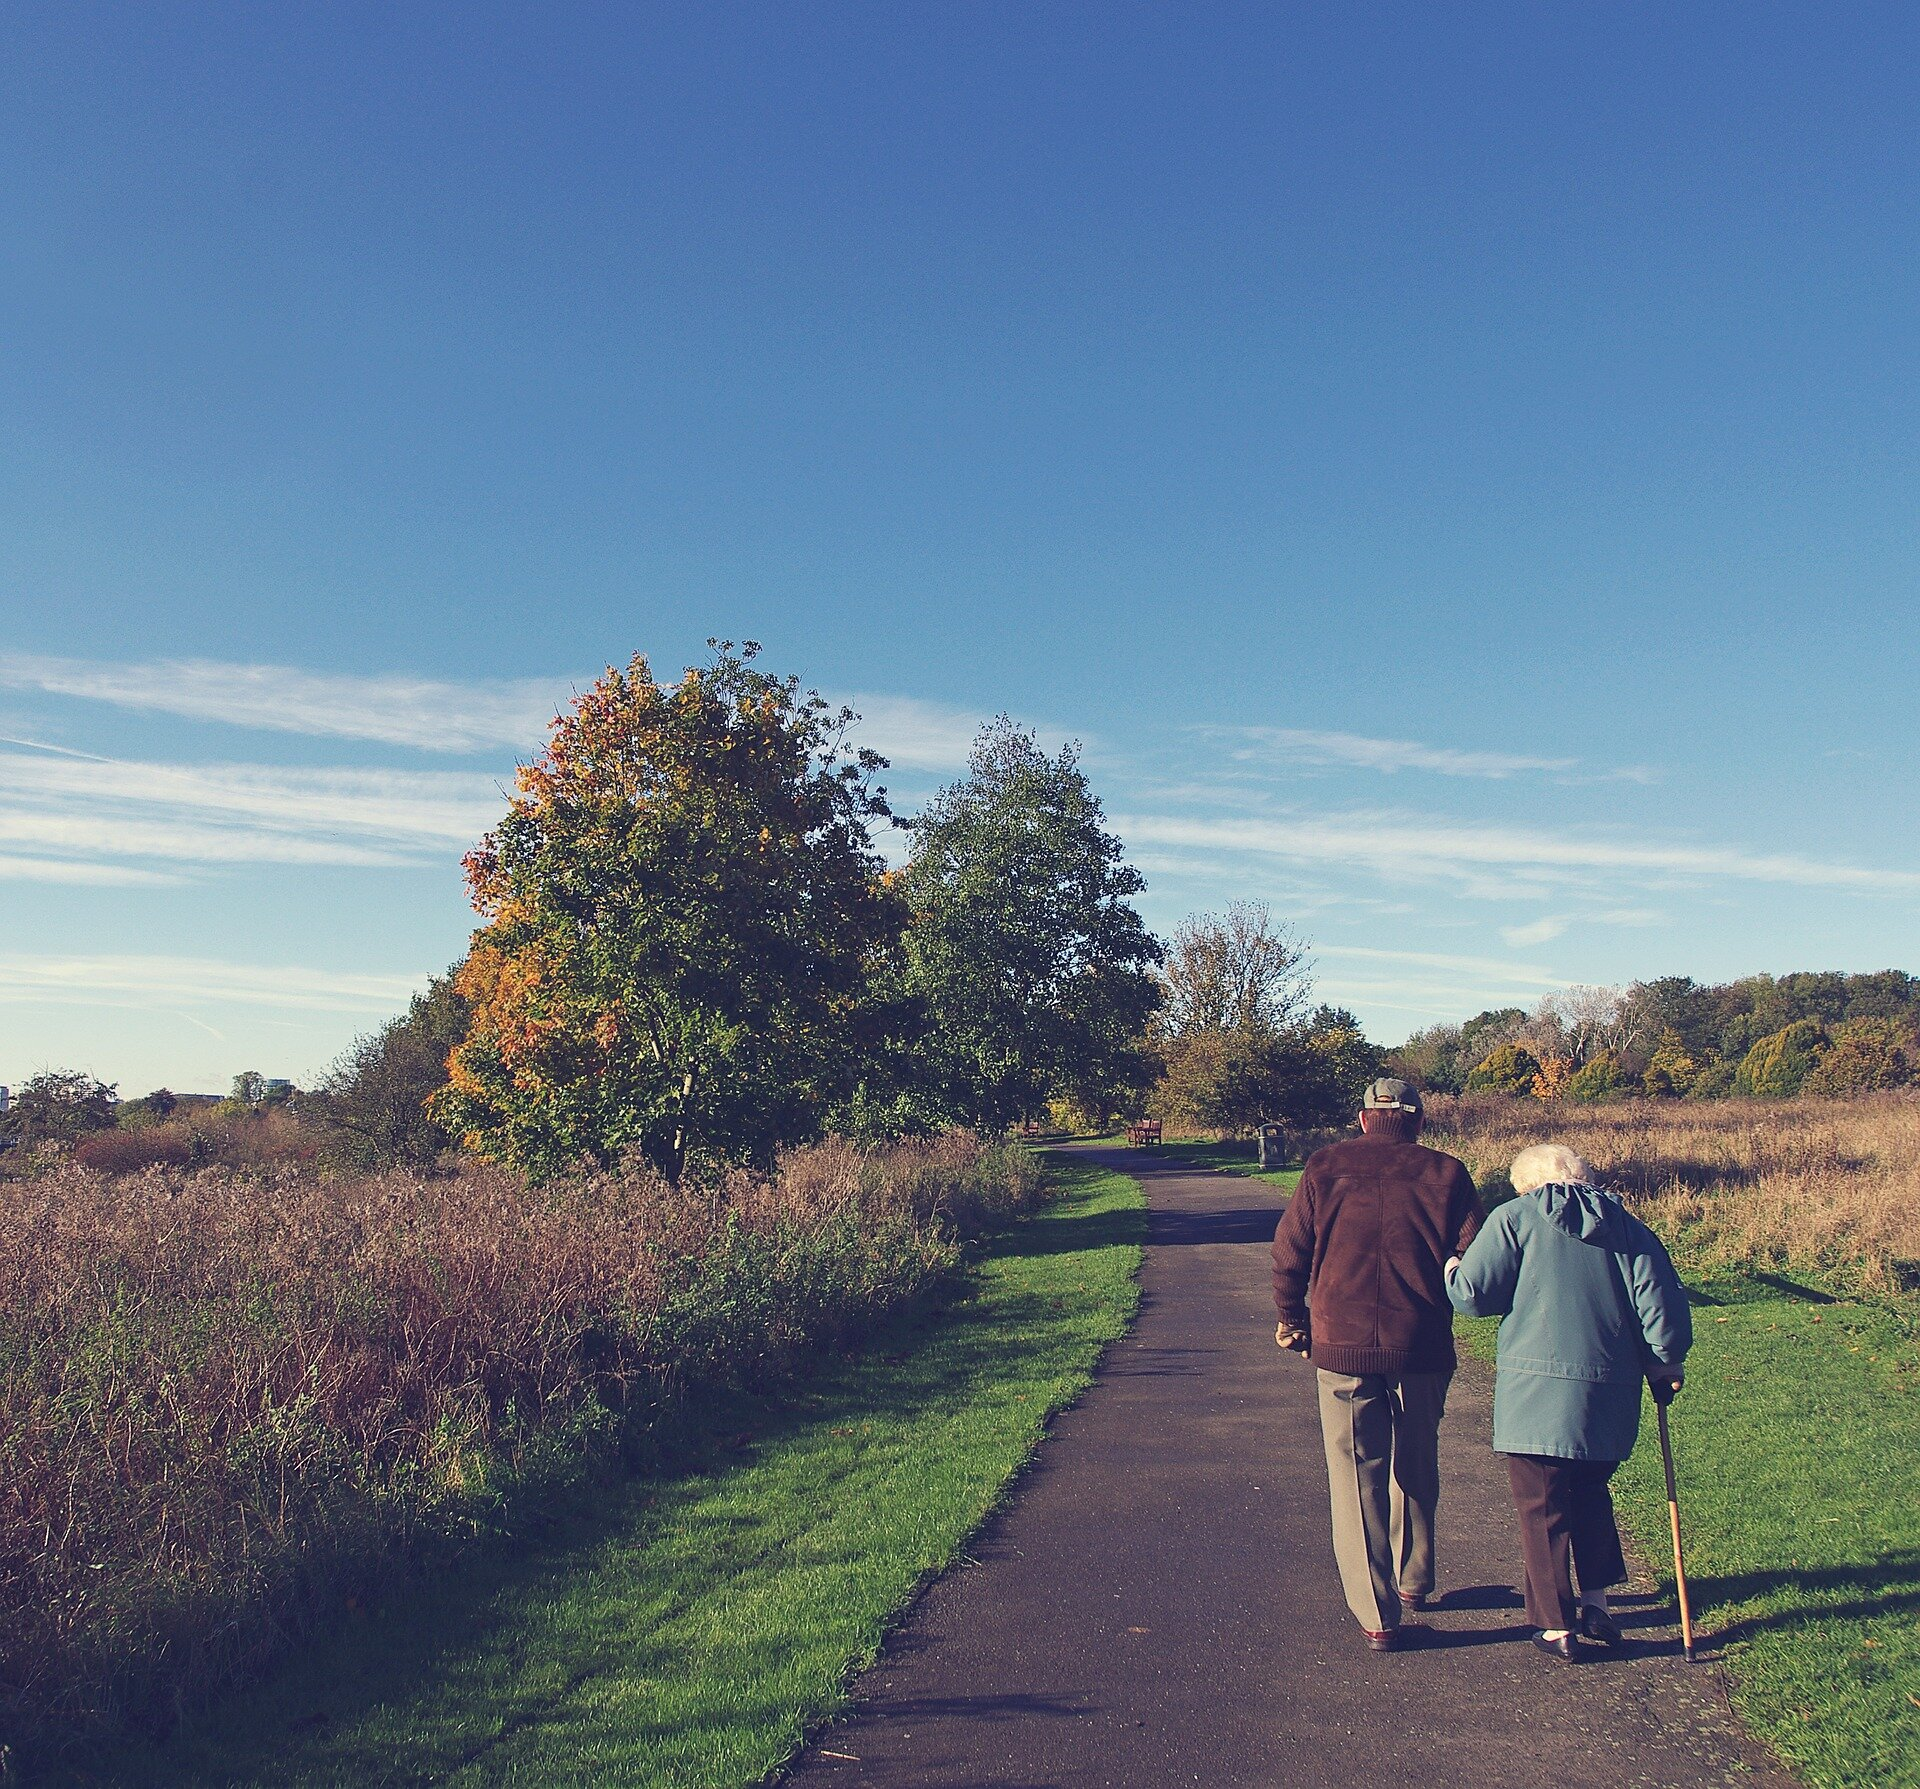 Improved access to greenspace for older adults needs to be considered